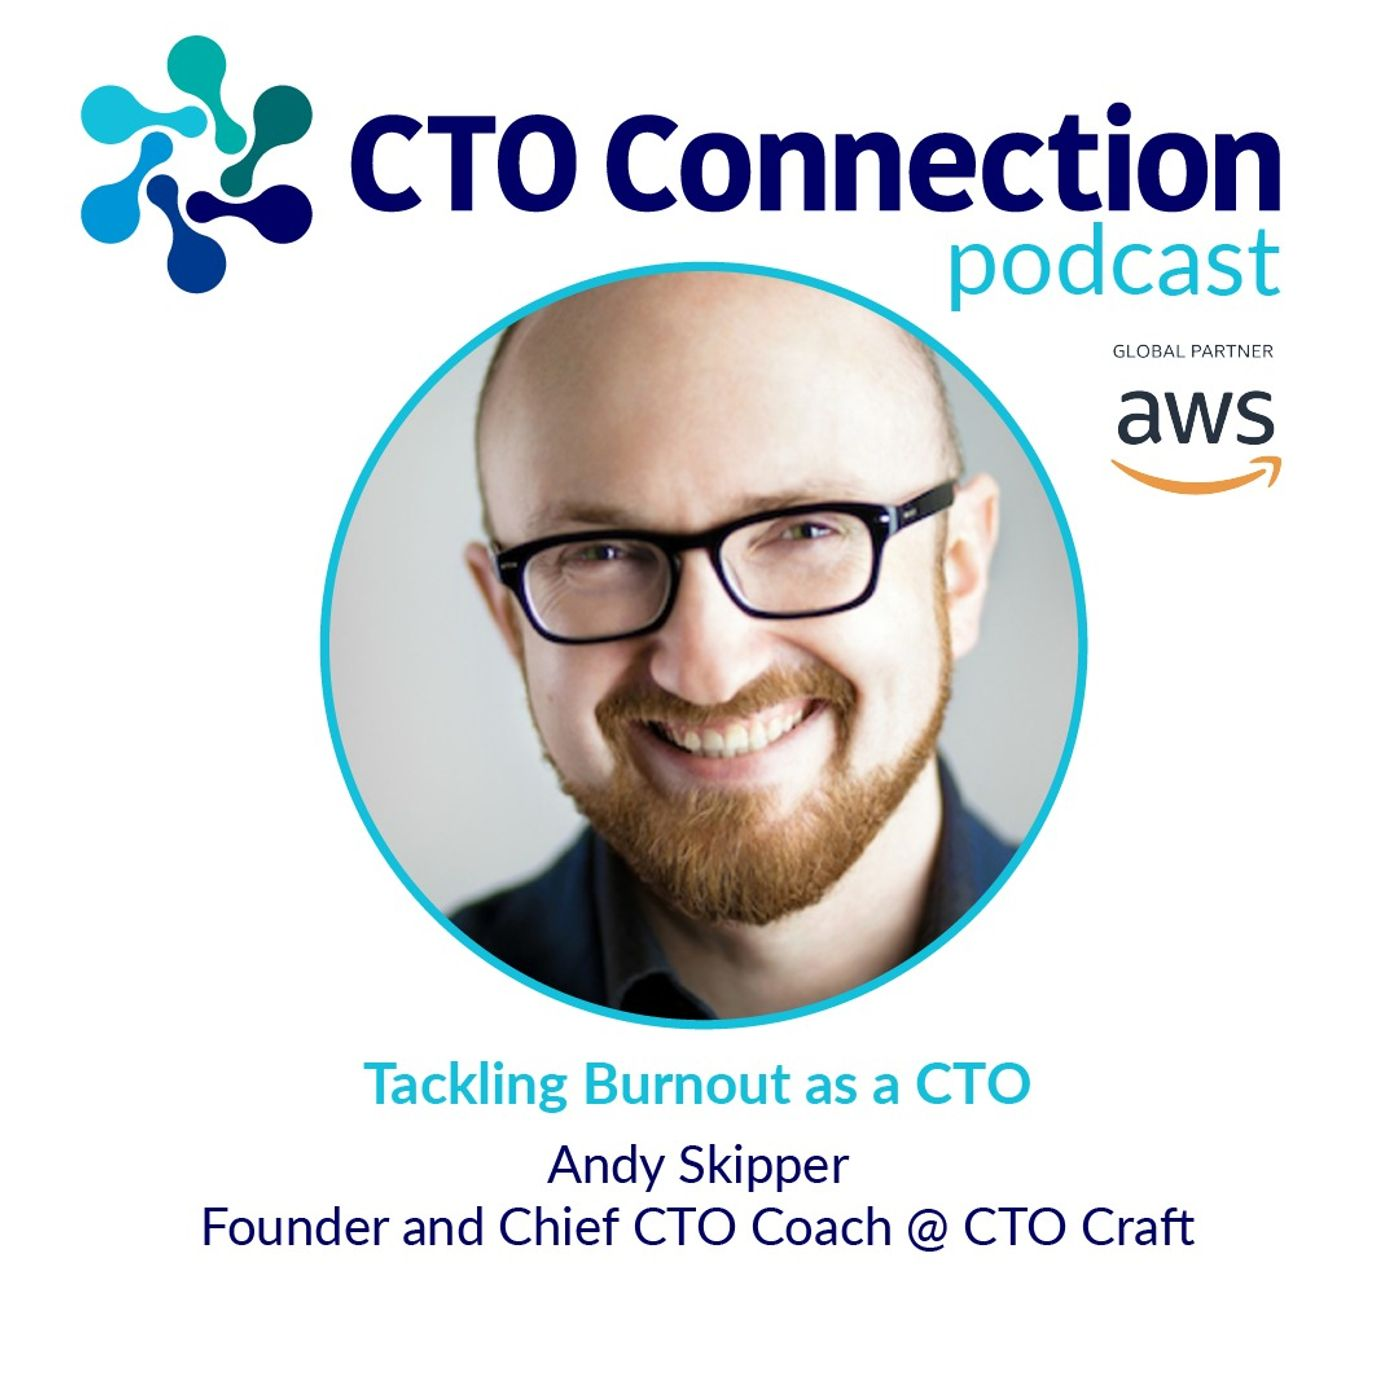 Tackling Burnout as a CTO with Andy Skipper